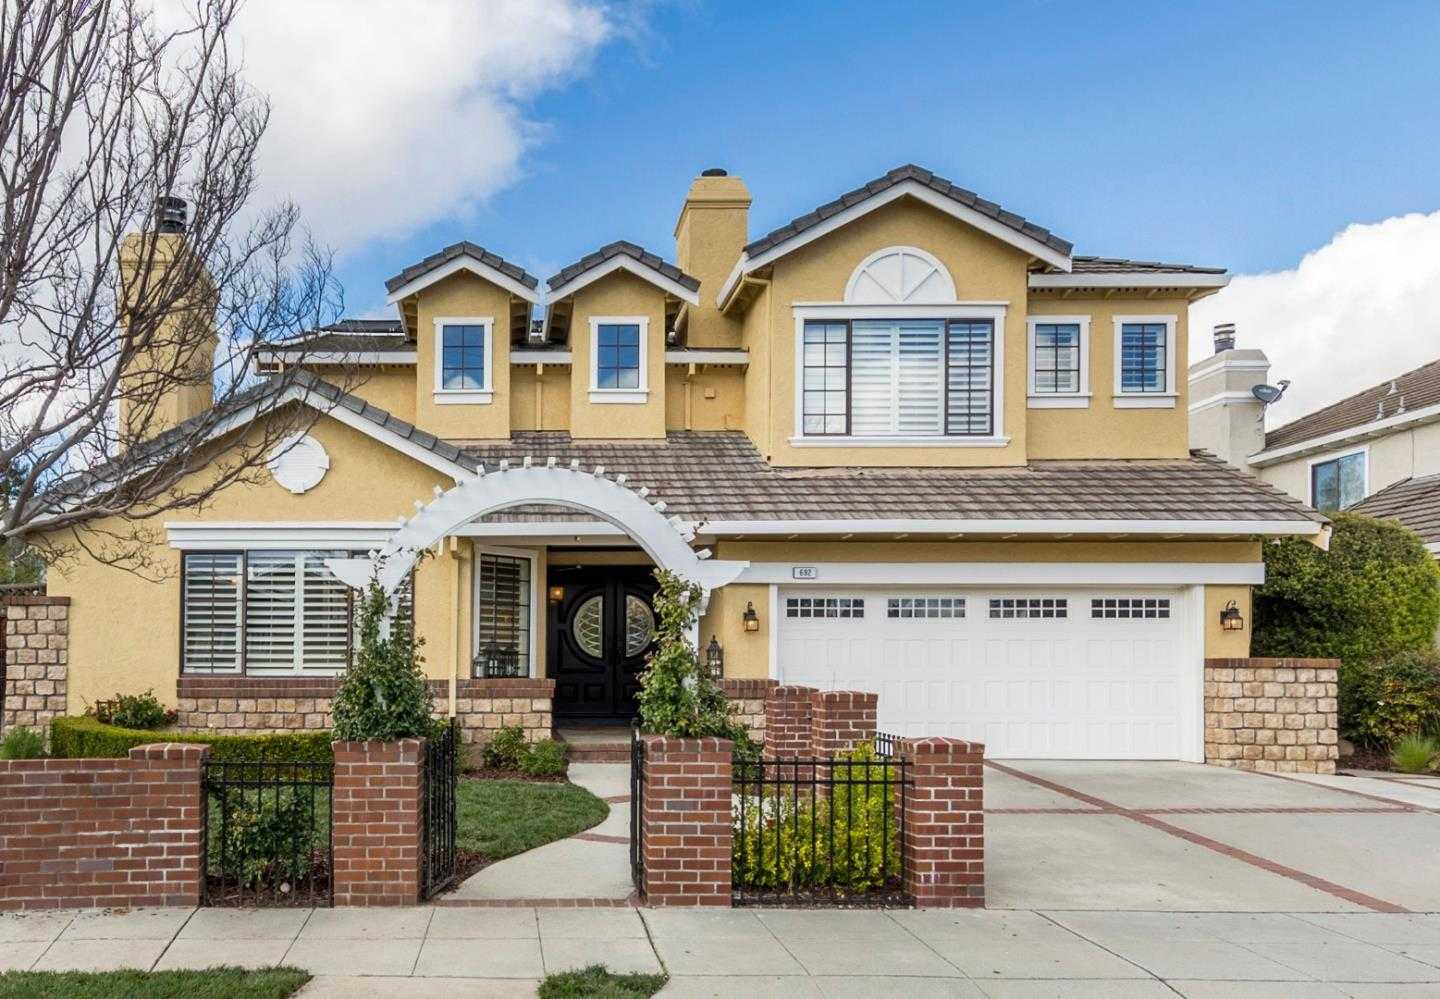 $2,998,000 - 5Br/3Ba -  for Sale in Mountain View